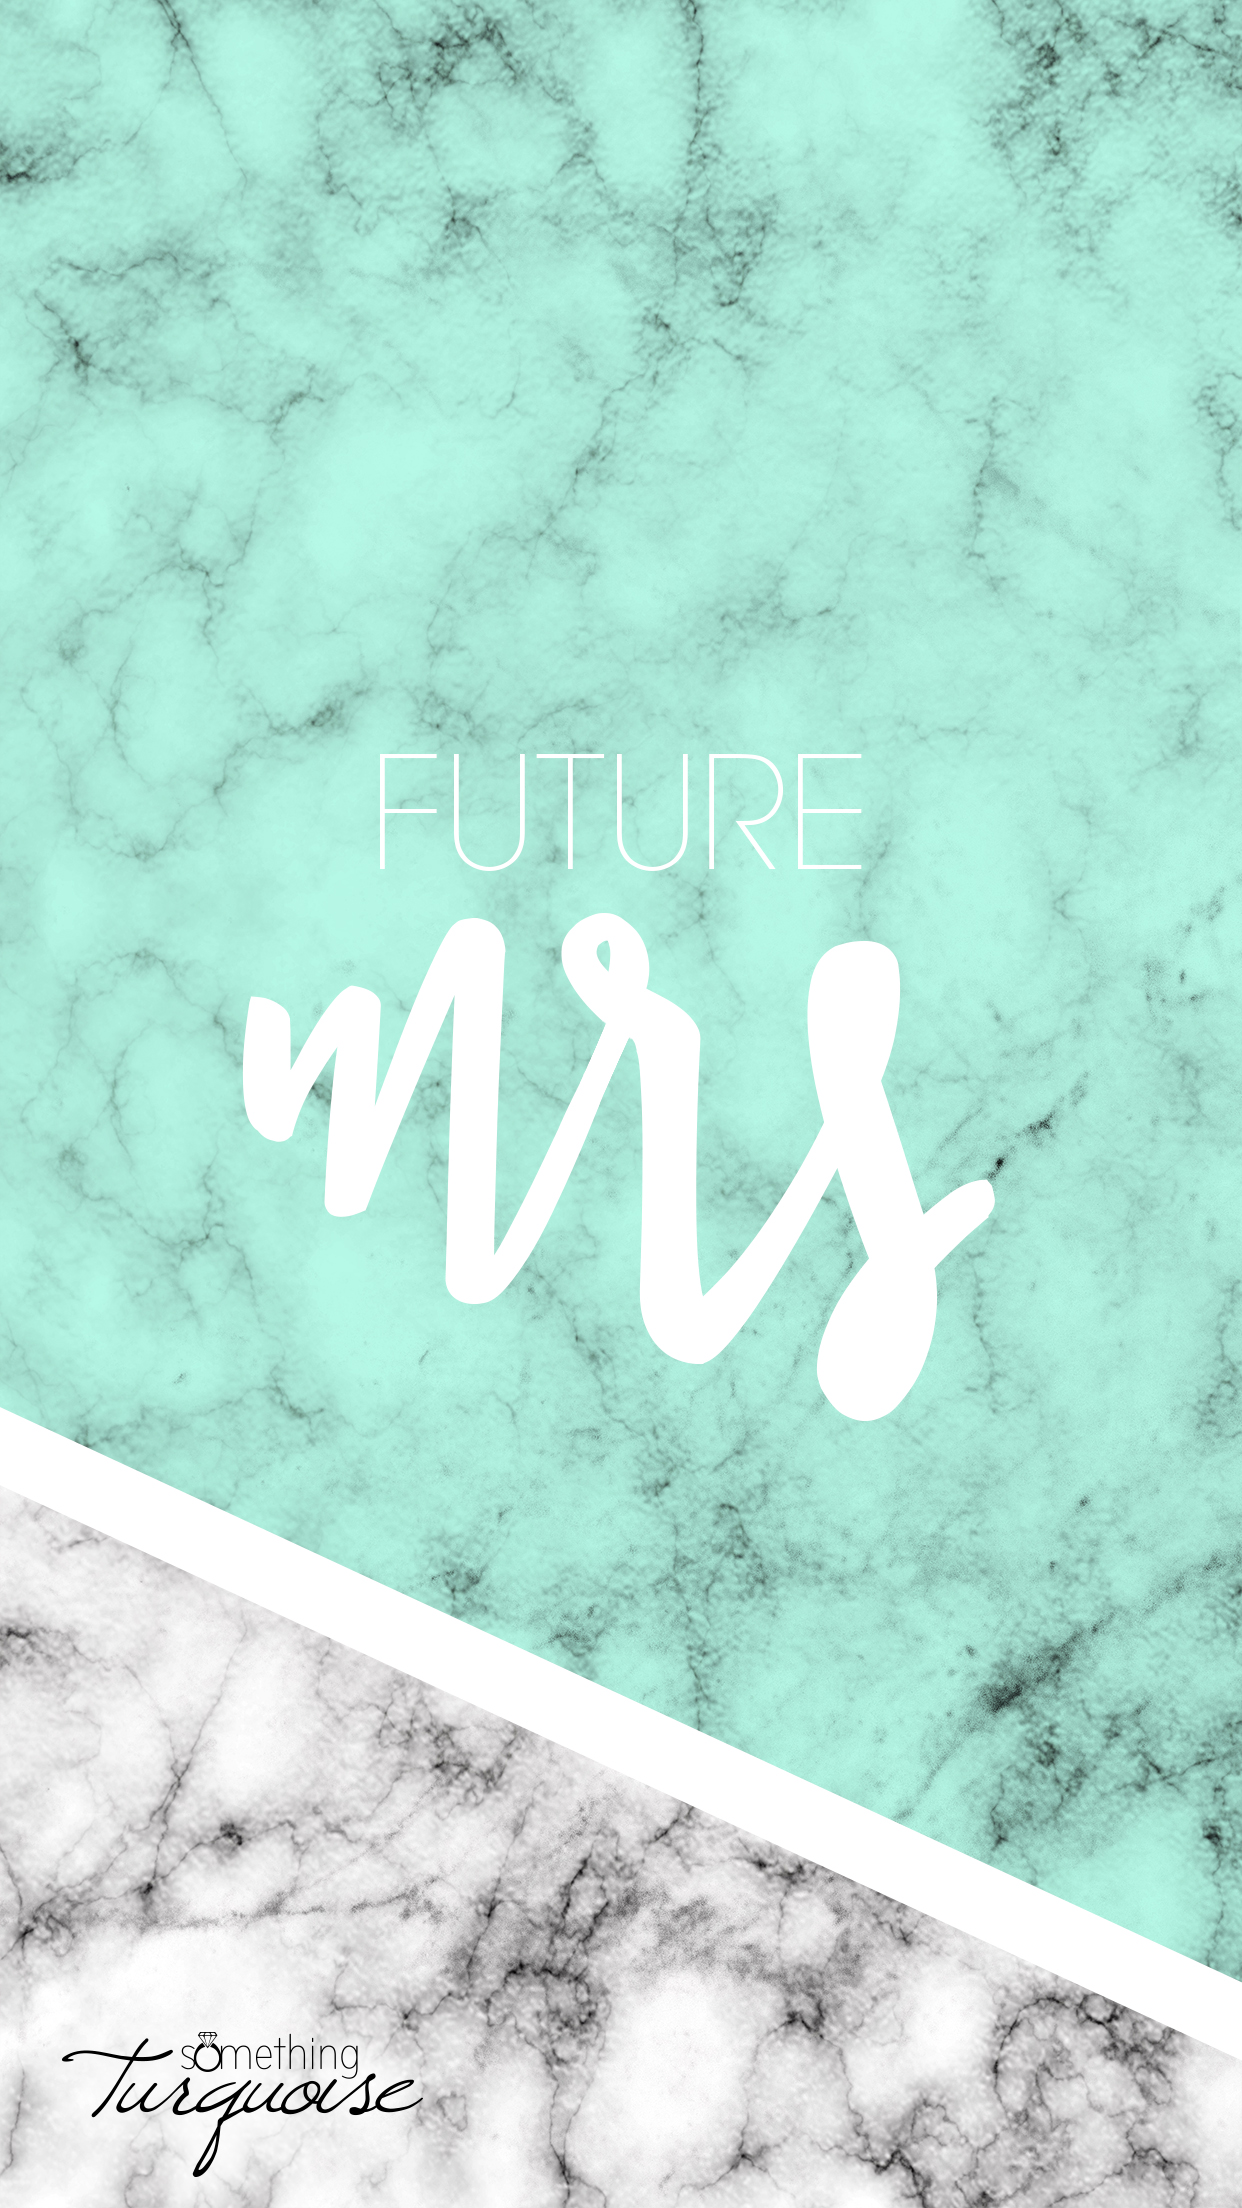 FREE mint Future Mrs iPhone wallpaper!